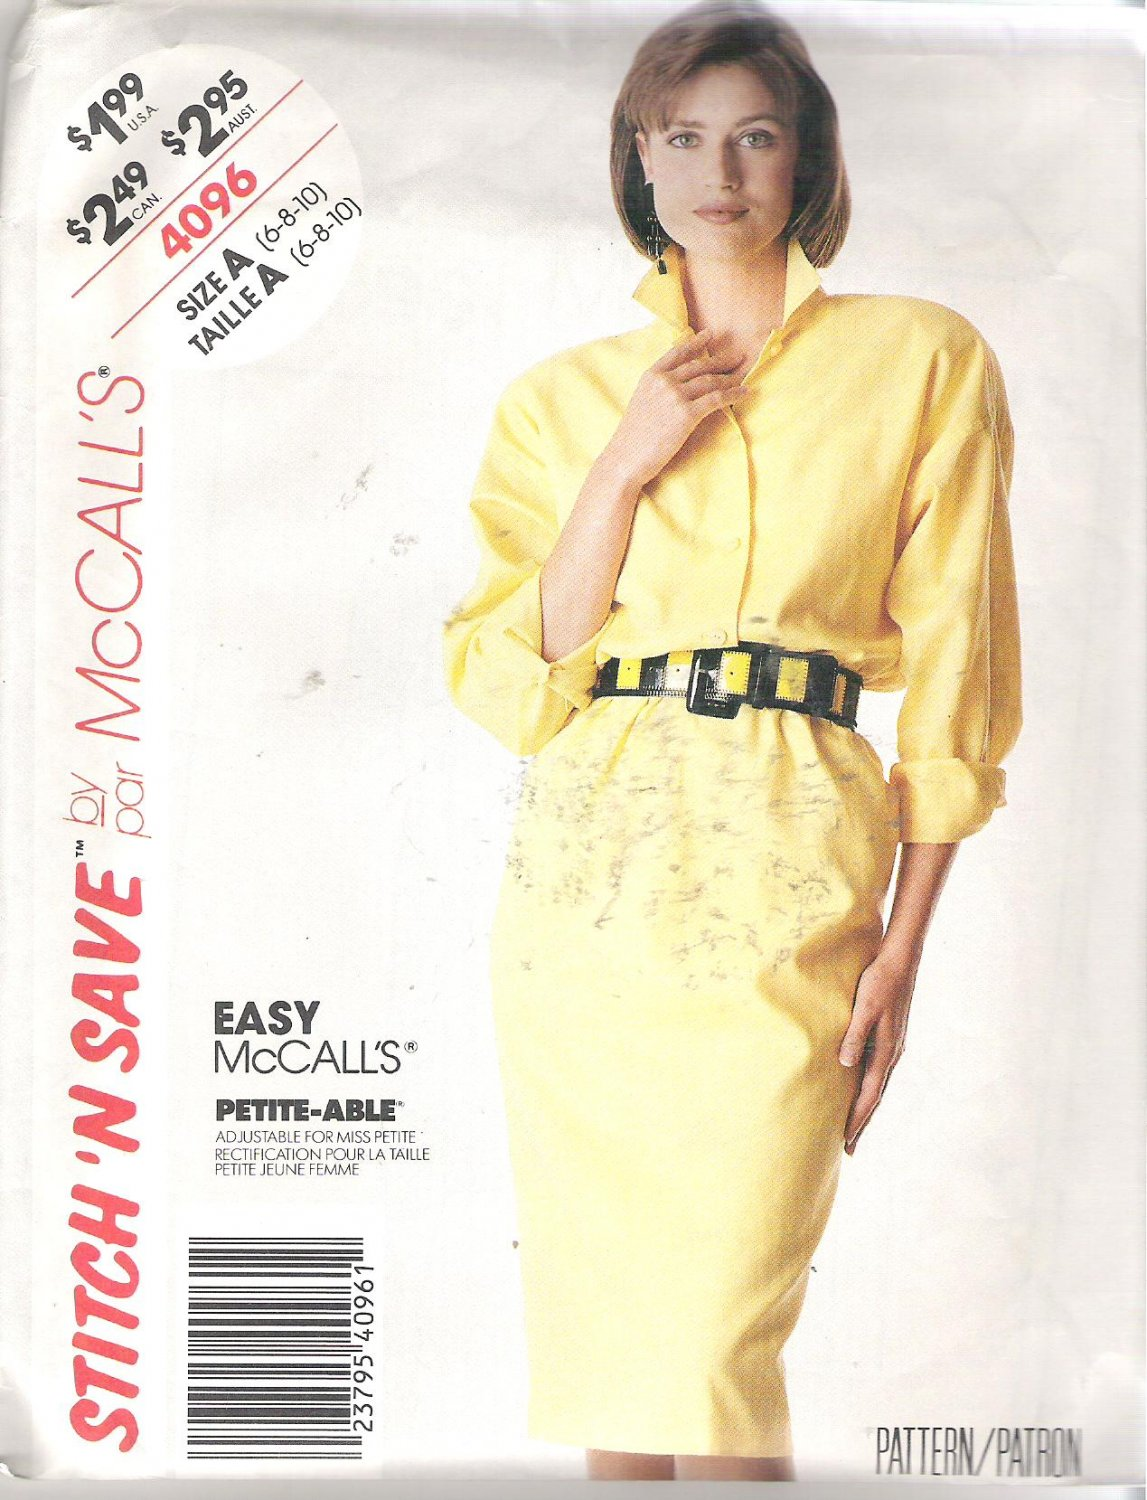 McCalls 4096 (1989) Easy Petite-able Pattern Pullover Dress  Size 6-10  Uncut